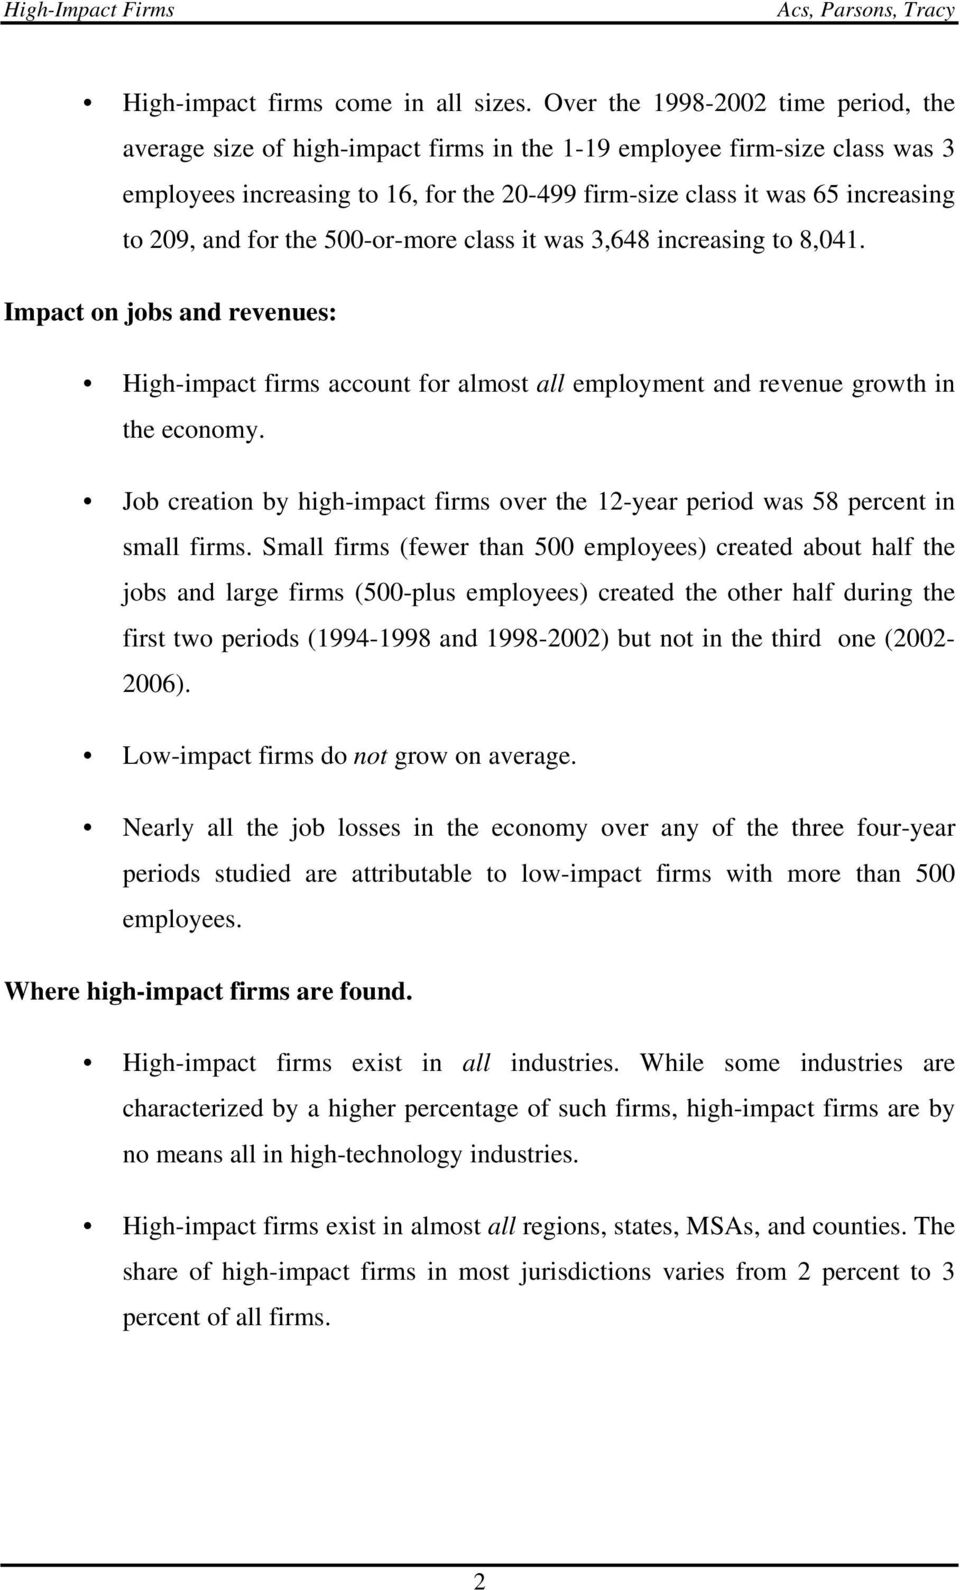 209, and for the 500-or-more class it was 3,648 increasing to 8,041. Impact on jobs and revenues: High-impact firms account for almost all employment and revenue growth in the economy.